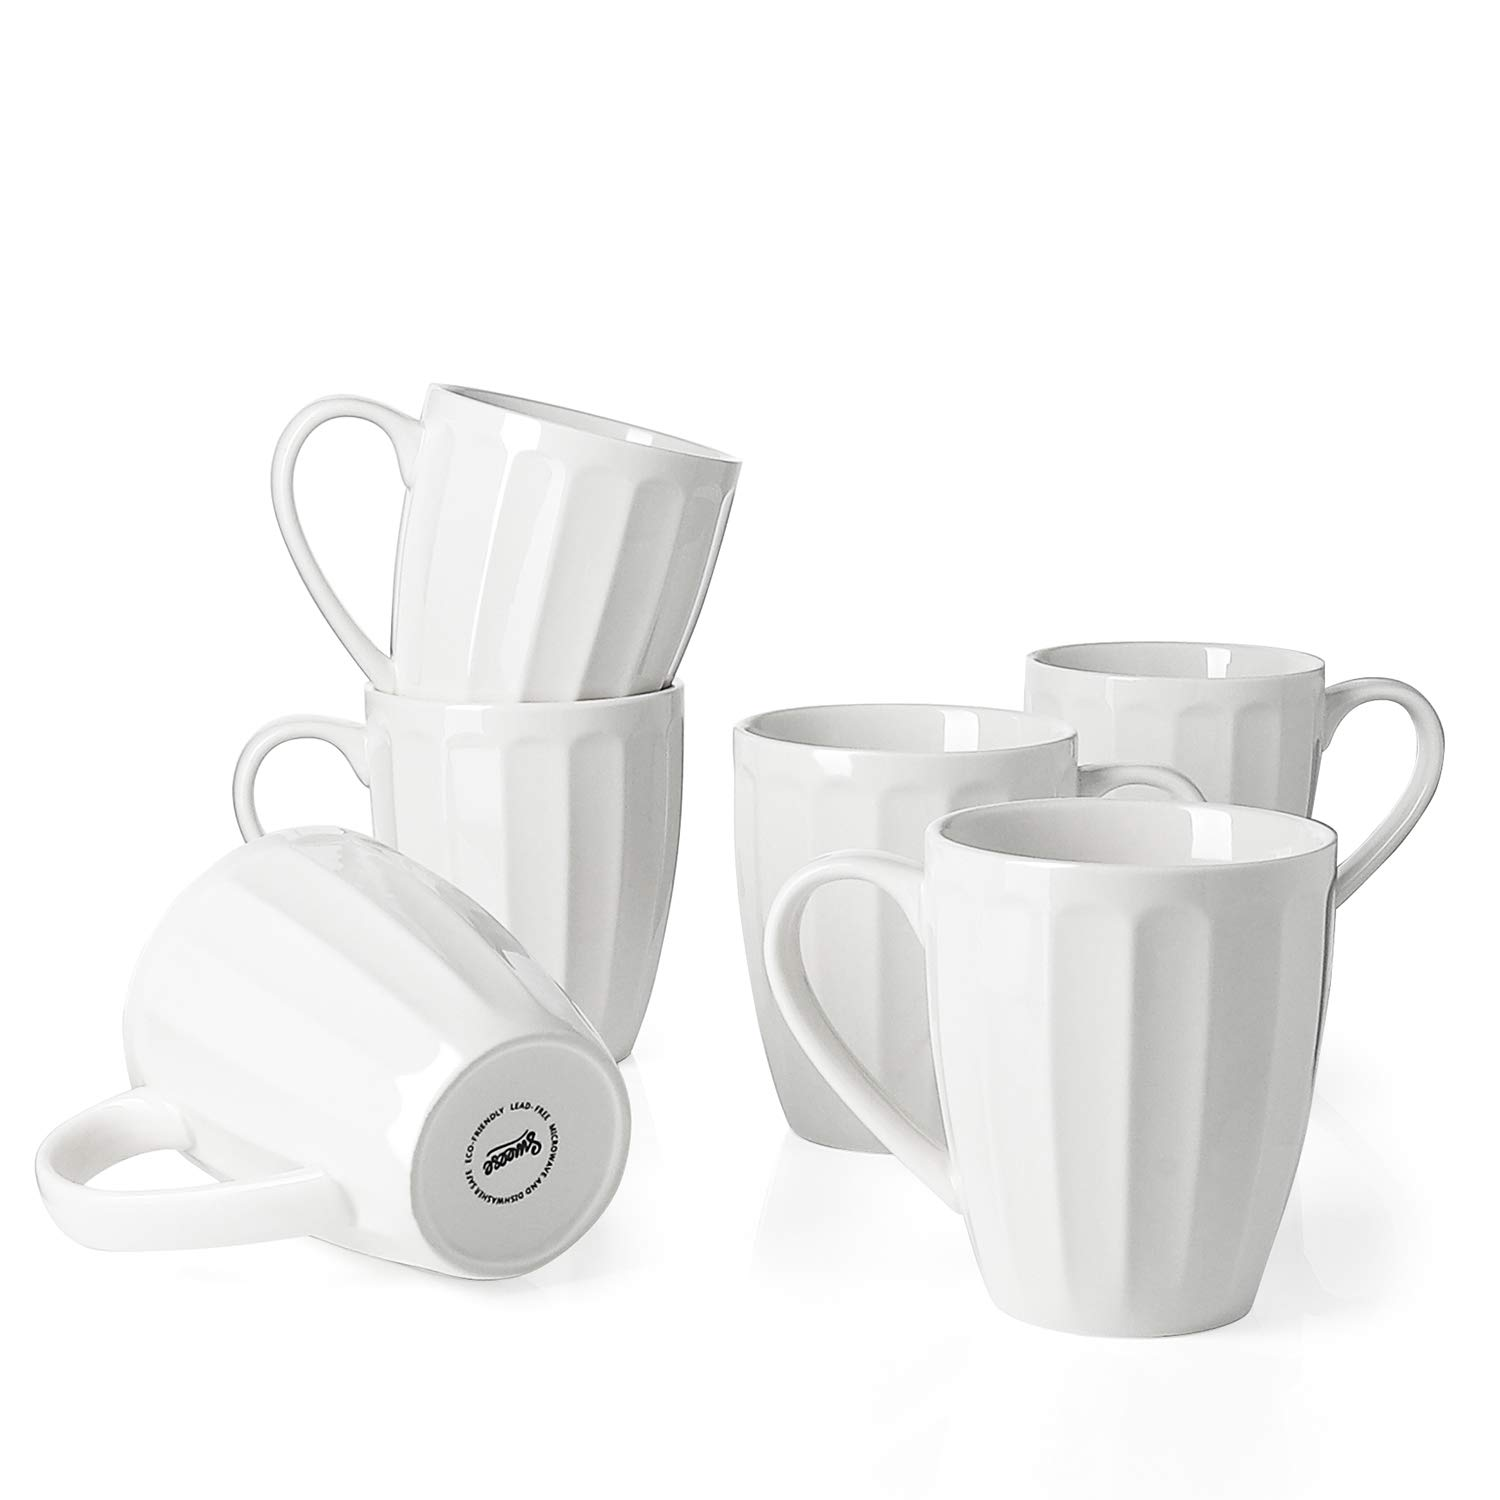 Sweese 6208 Porcelain Fluted Mugs - 14 Ounce for Coffee, Tea, Cocoa, Set of 6, White